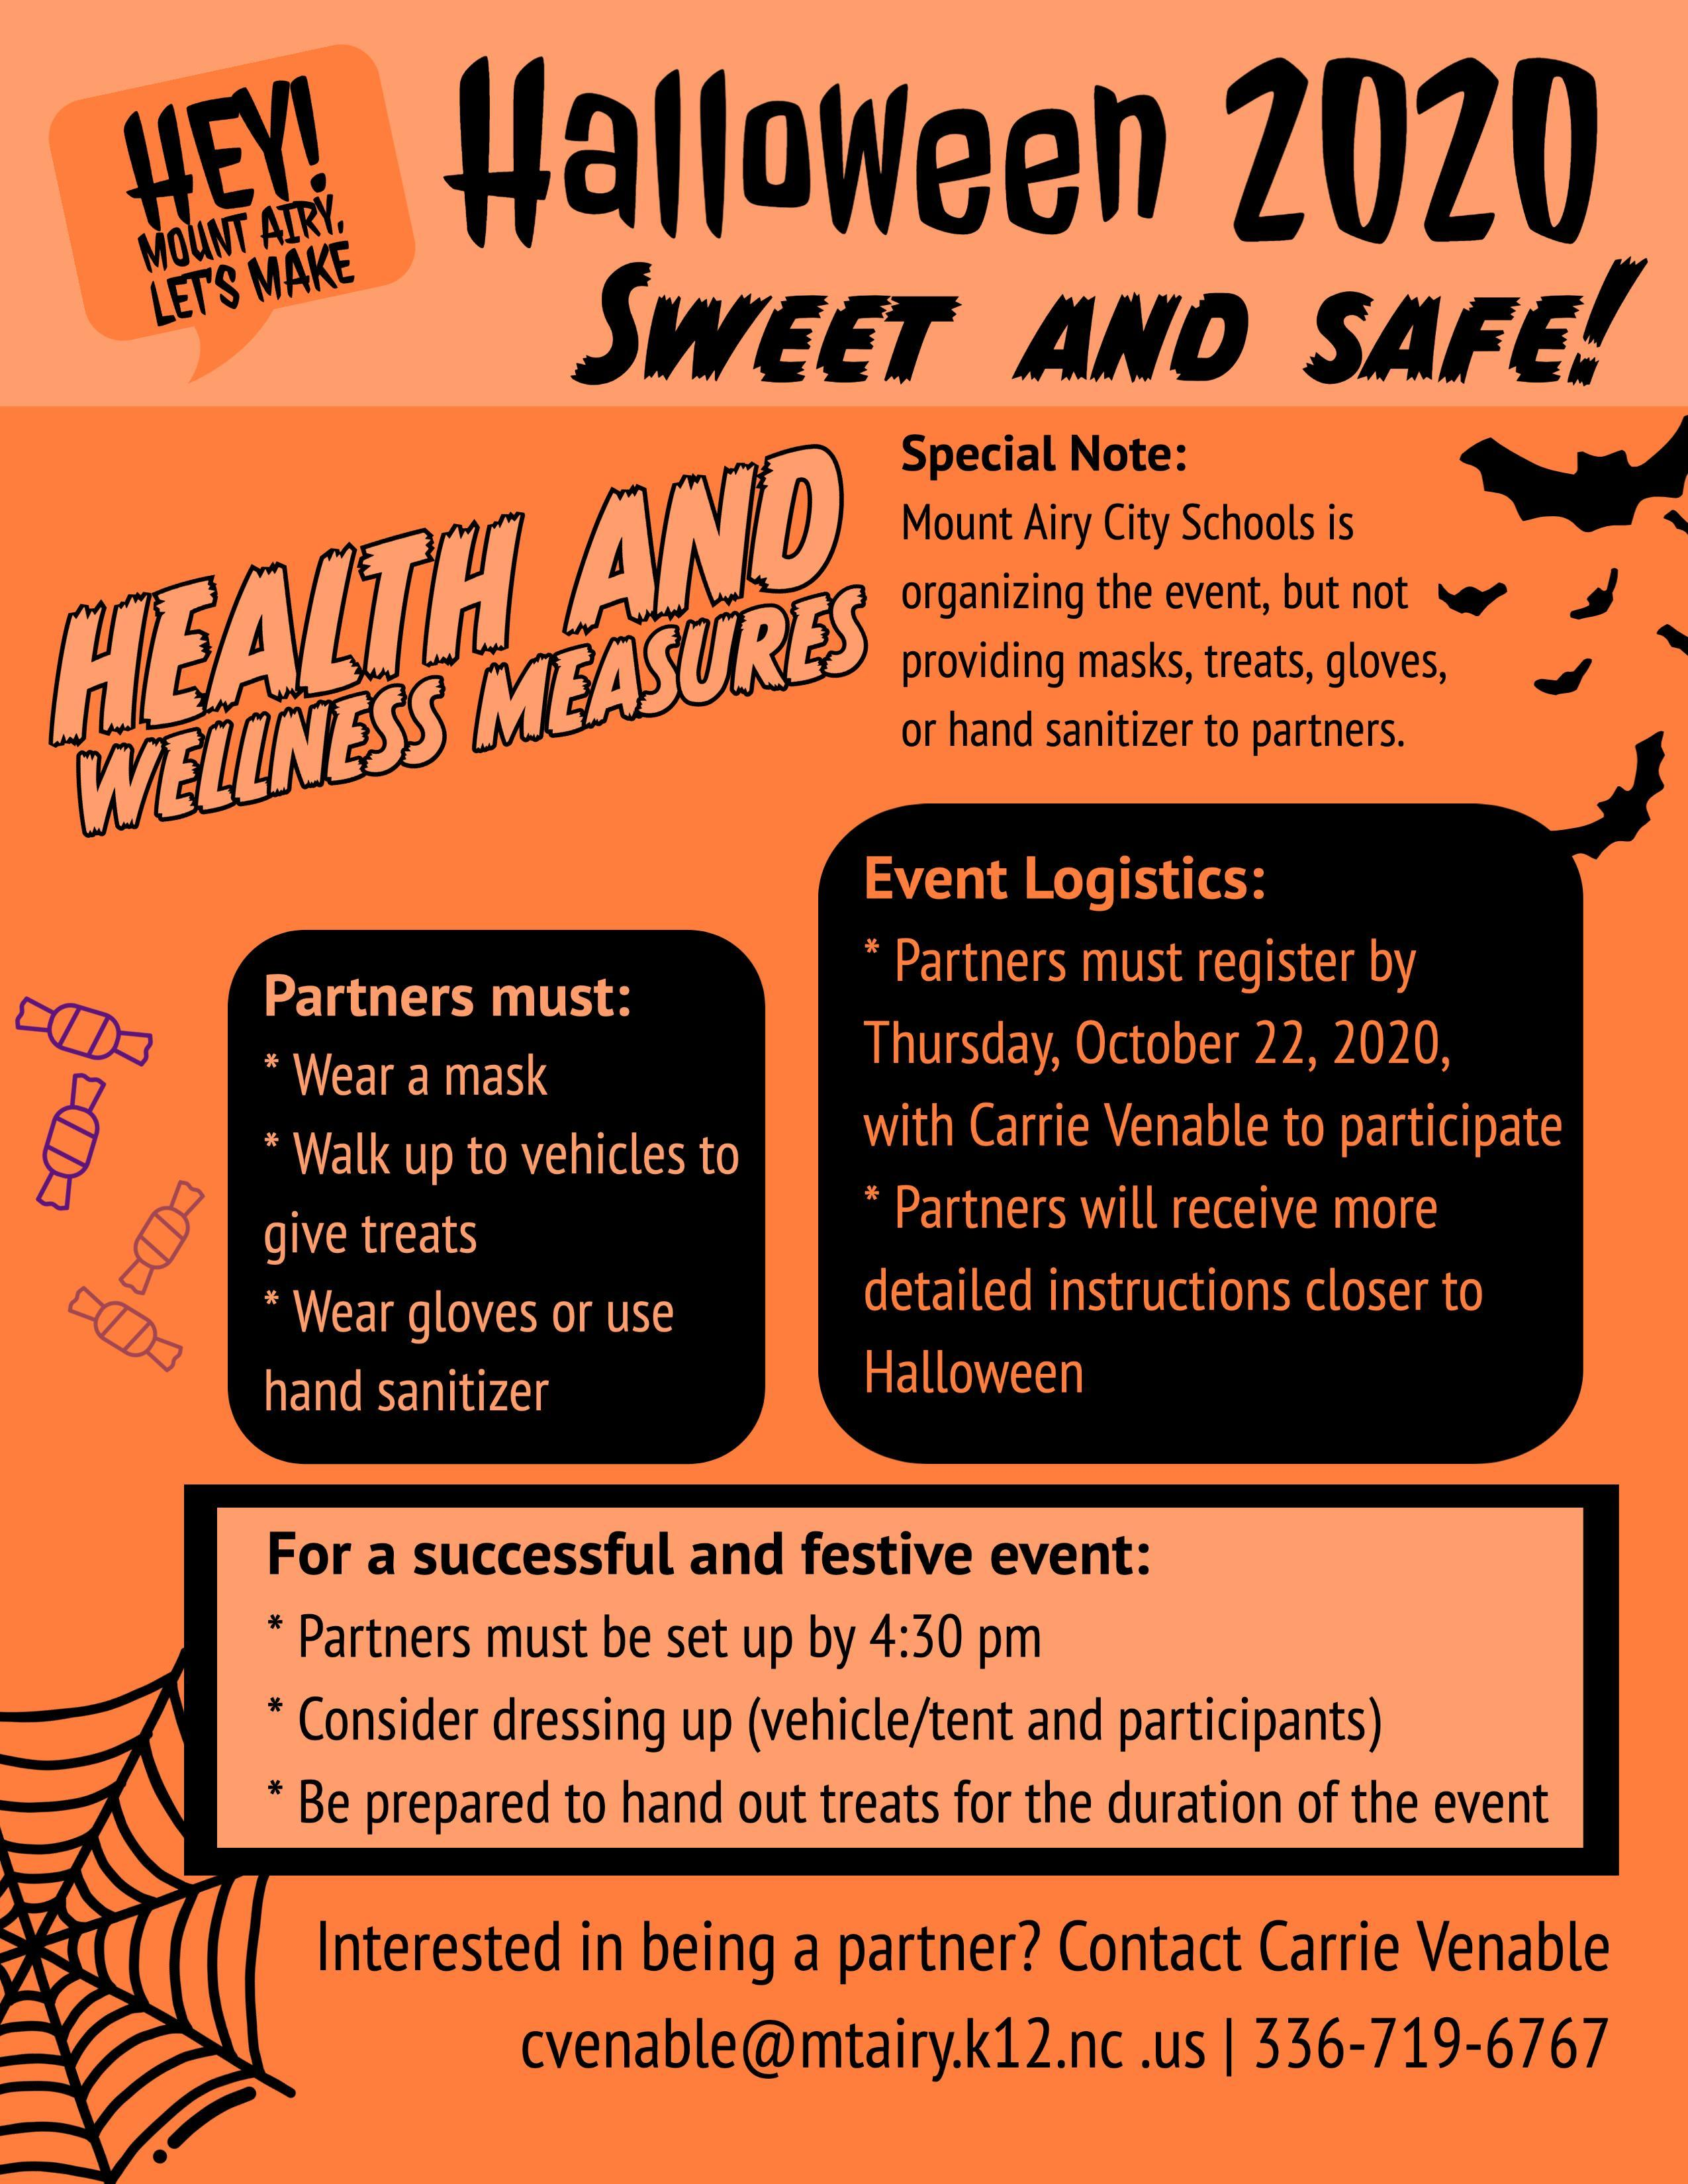 Closers Halloween Event 2020 Mount Airy City Schools